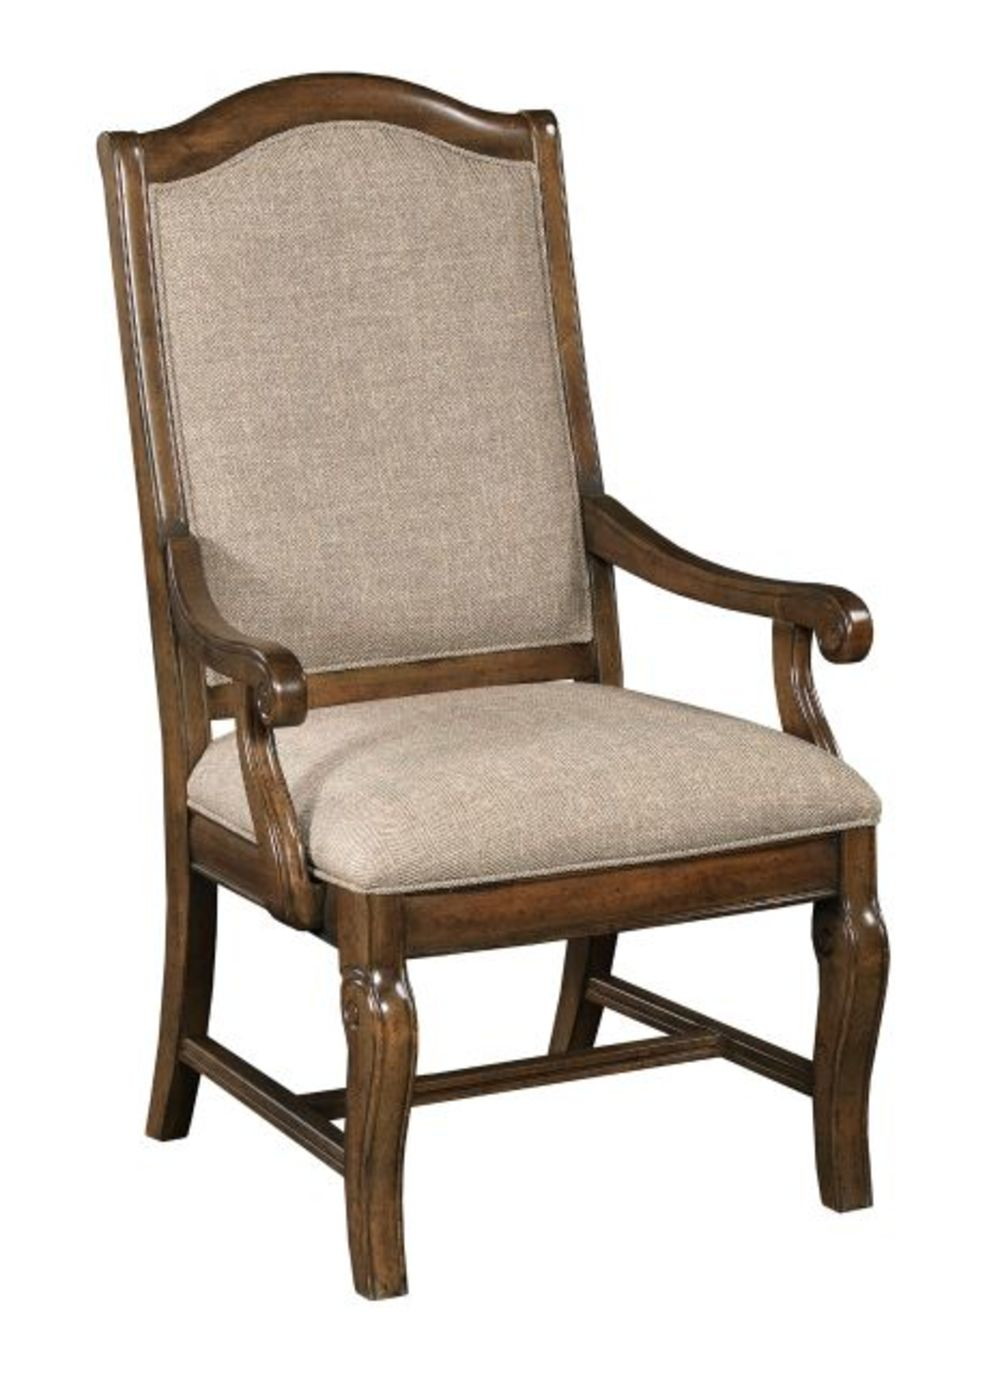 Kincaid Furniture - Upholstered Arm Chair